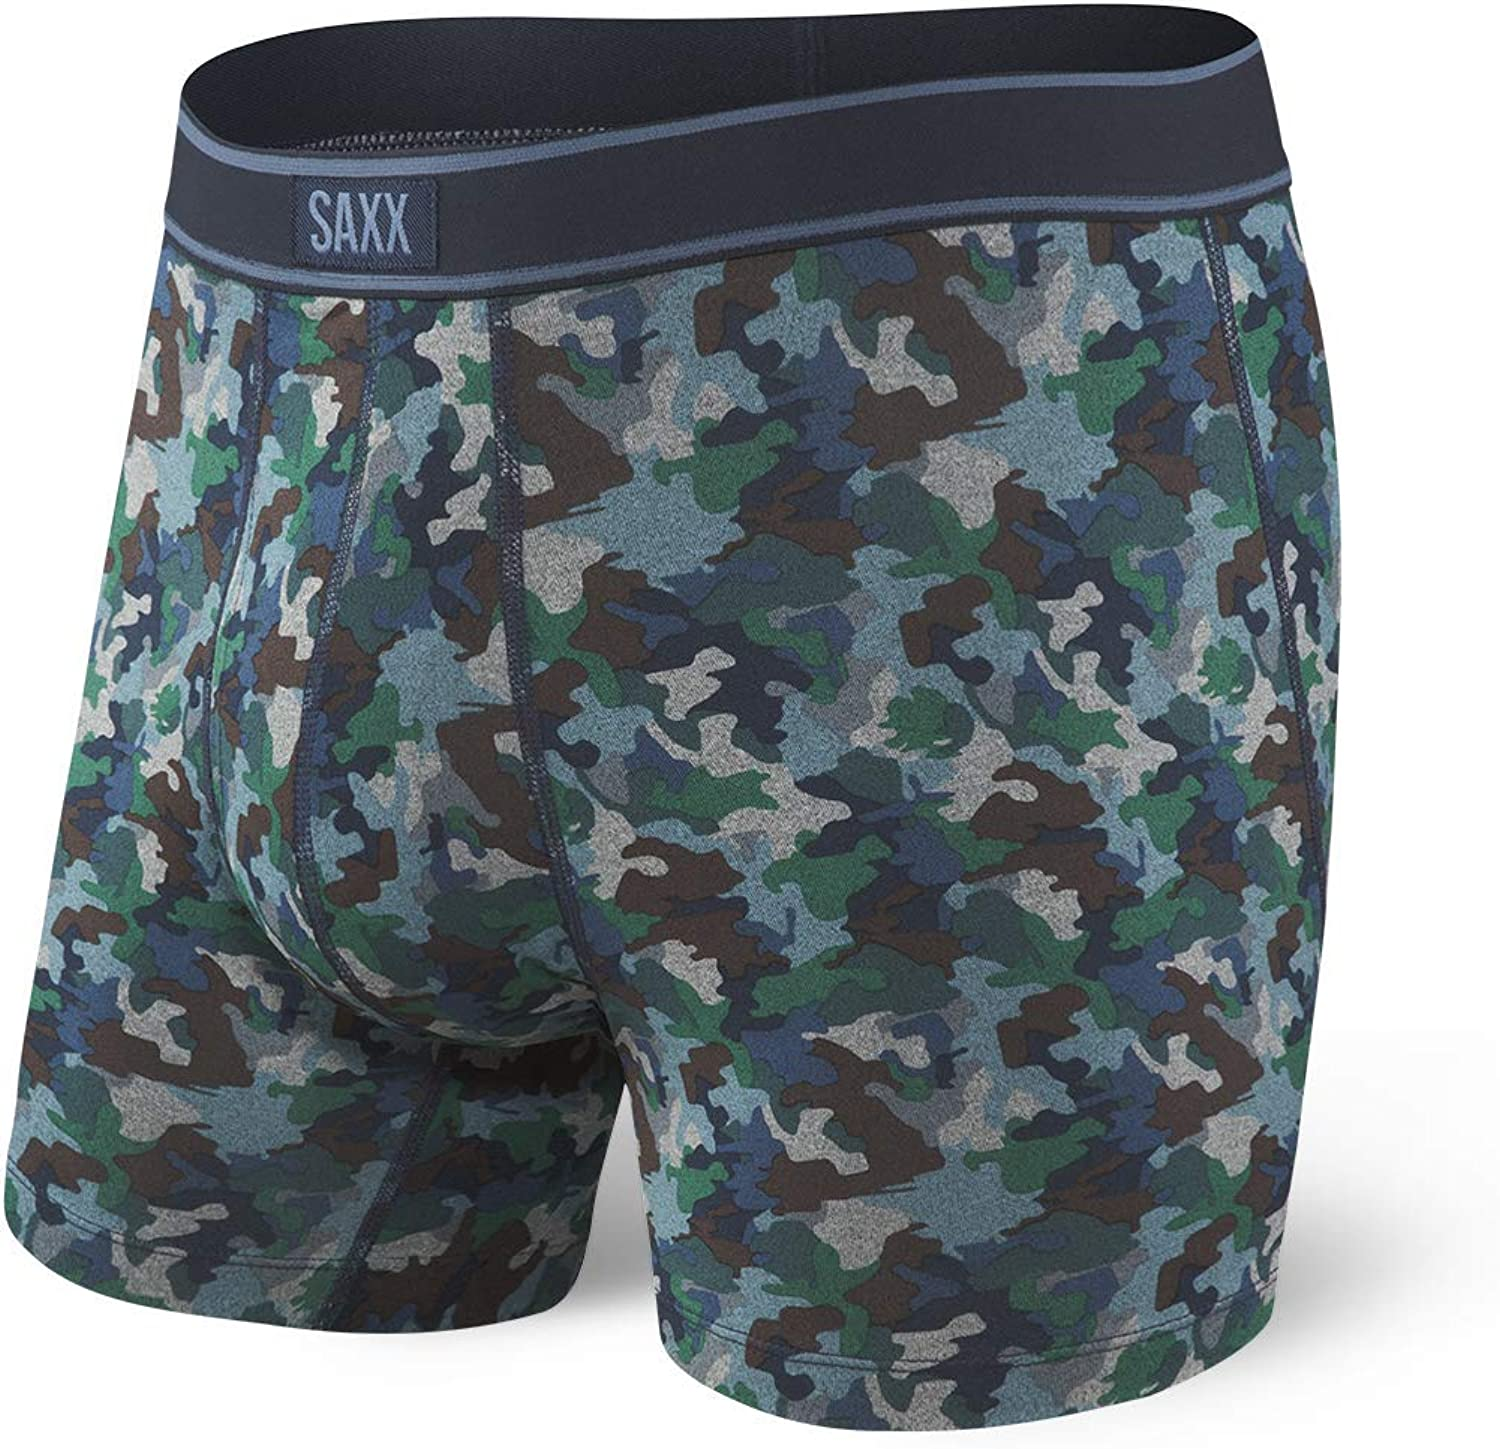 Saxx Underwear Men's Boxer Briefs - Daytripper Boxer Briefs with Built-in Ballpark Pouch Support